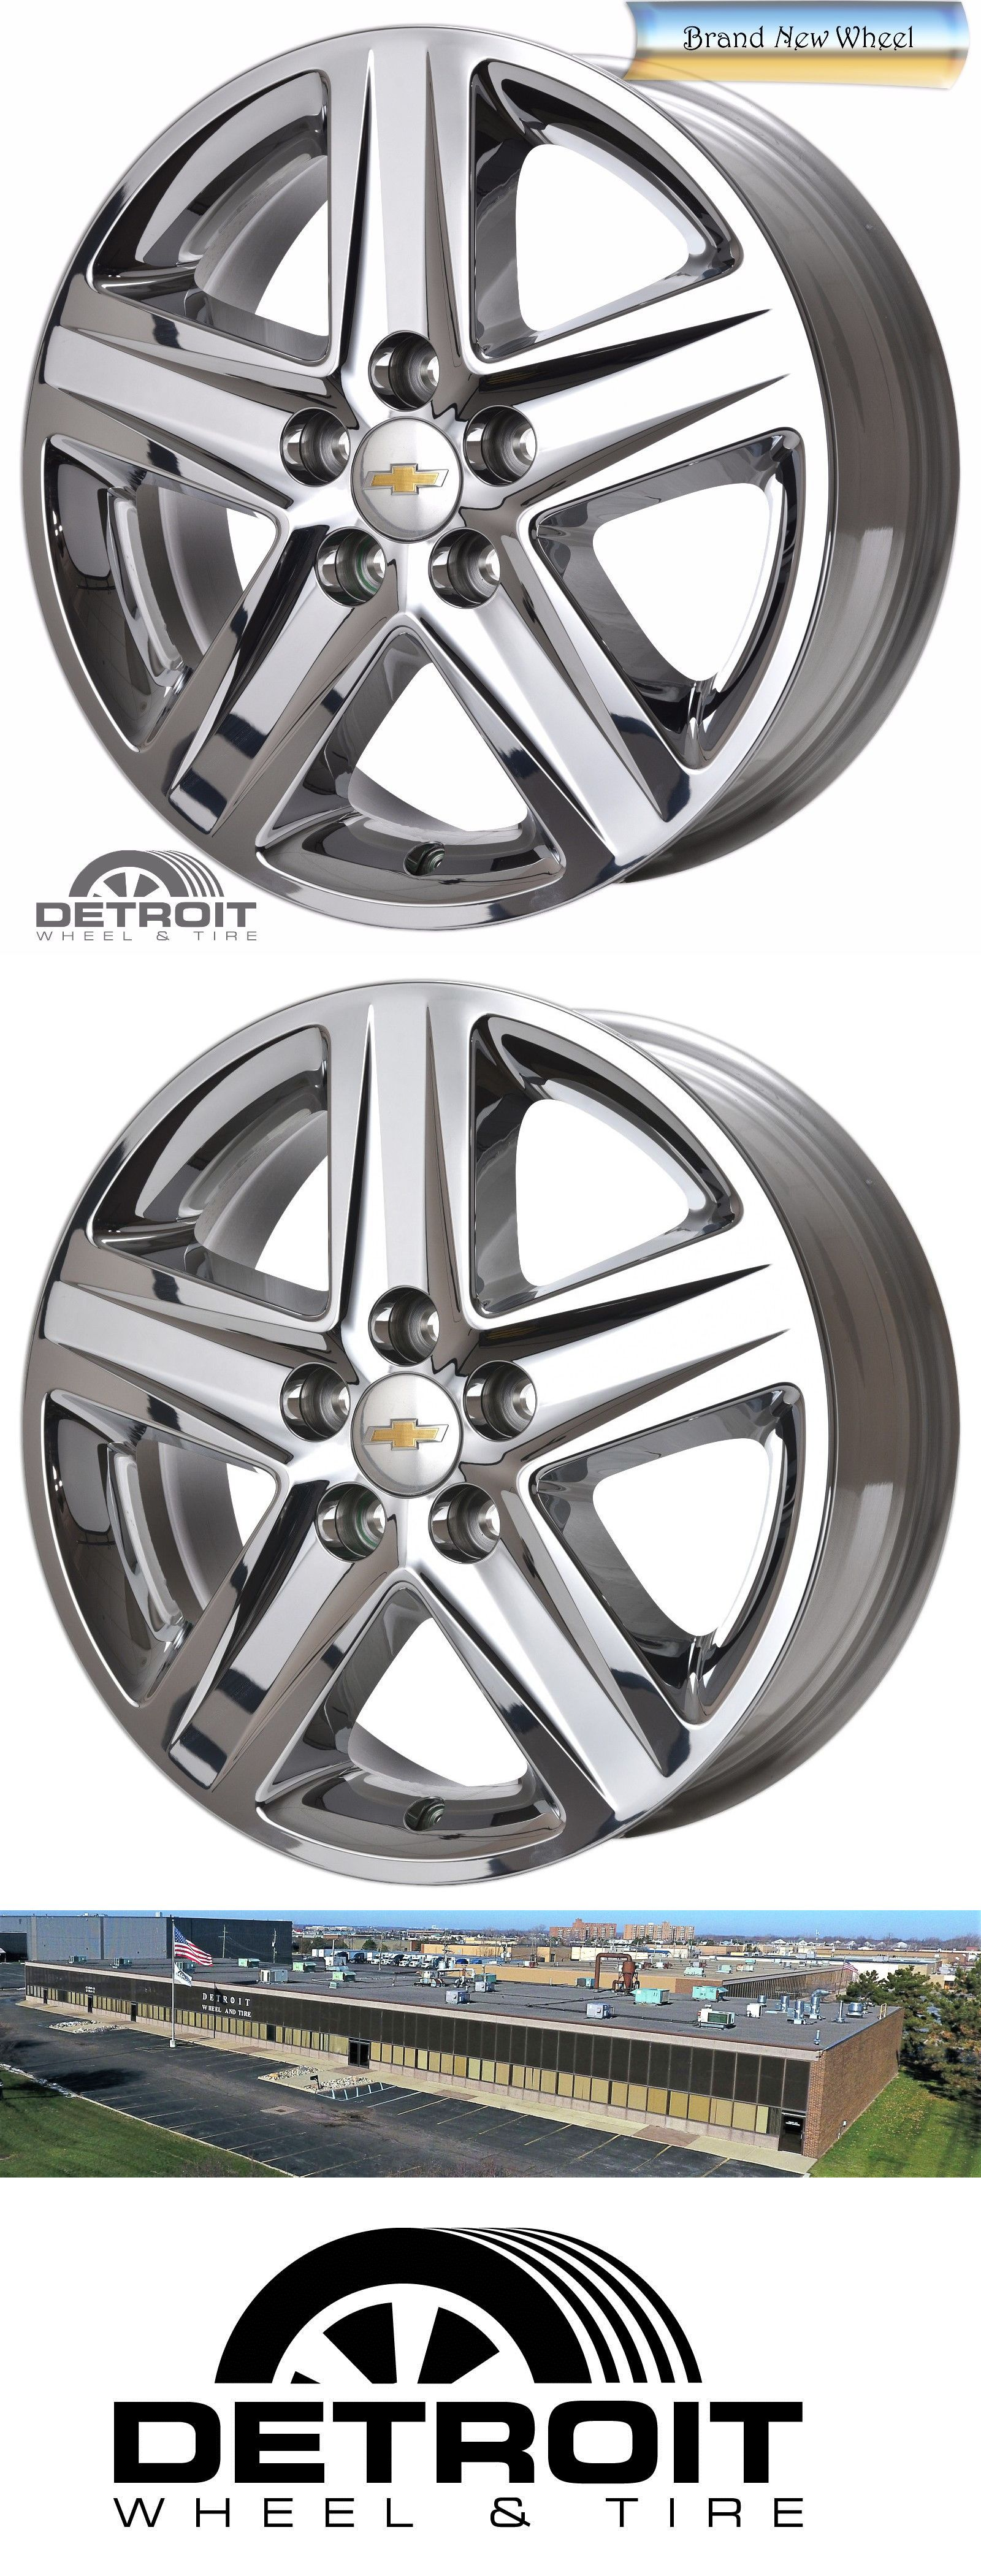 cars now get right chevrolet factory new best looking you can highres competition wheels oem the